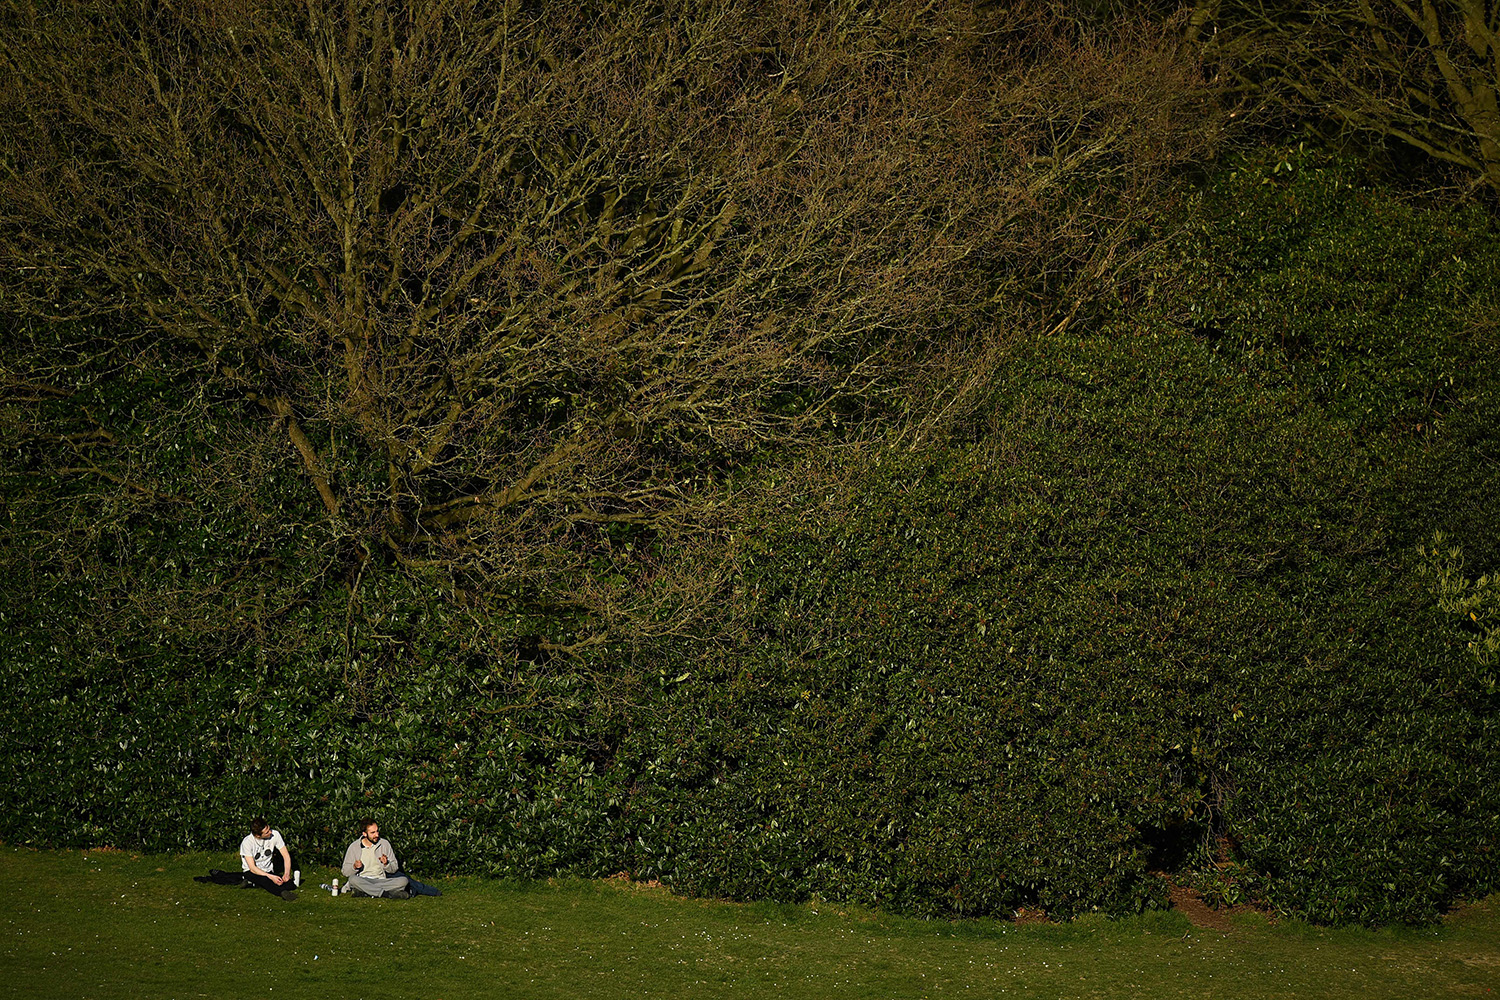 People sit in Crystal Palace Park in south London on March 24. BEN STANSALL/AFP via Getty Images